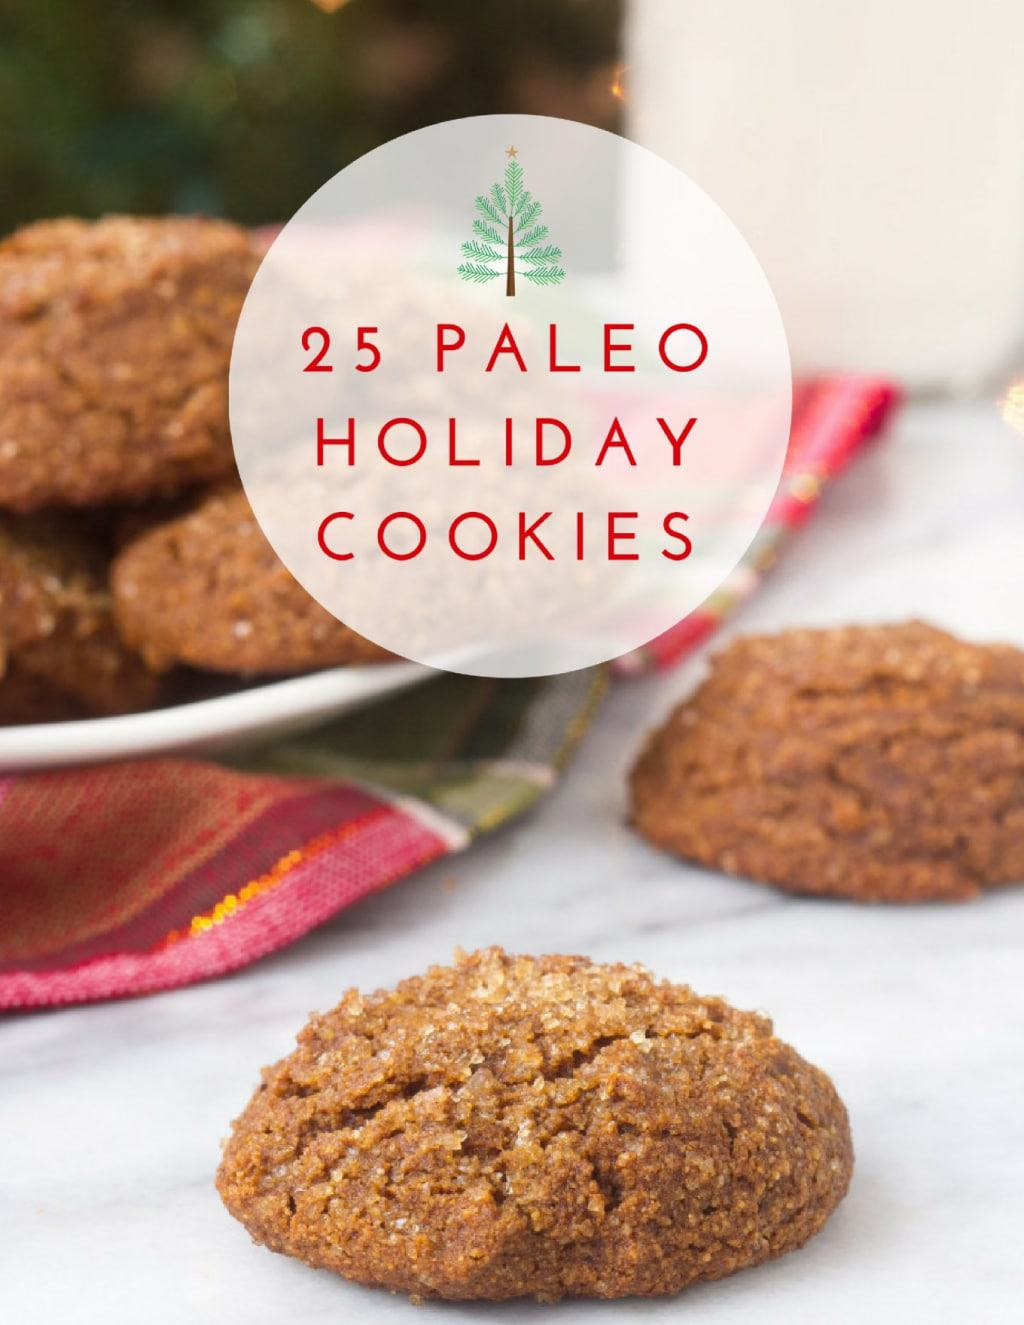 25 Paleo Holiday Cookies